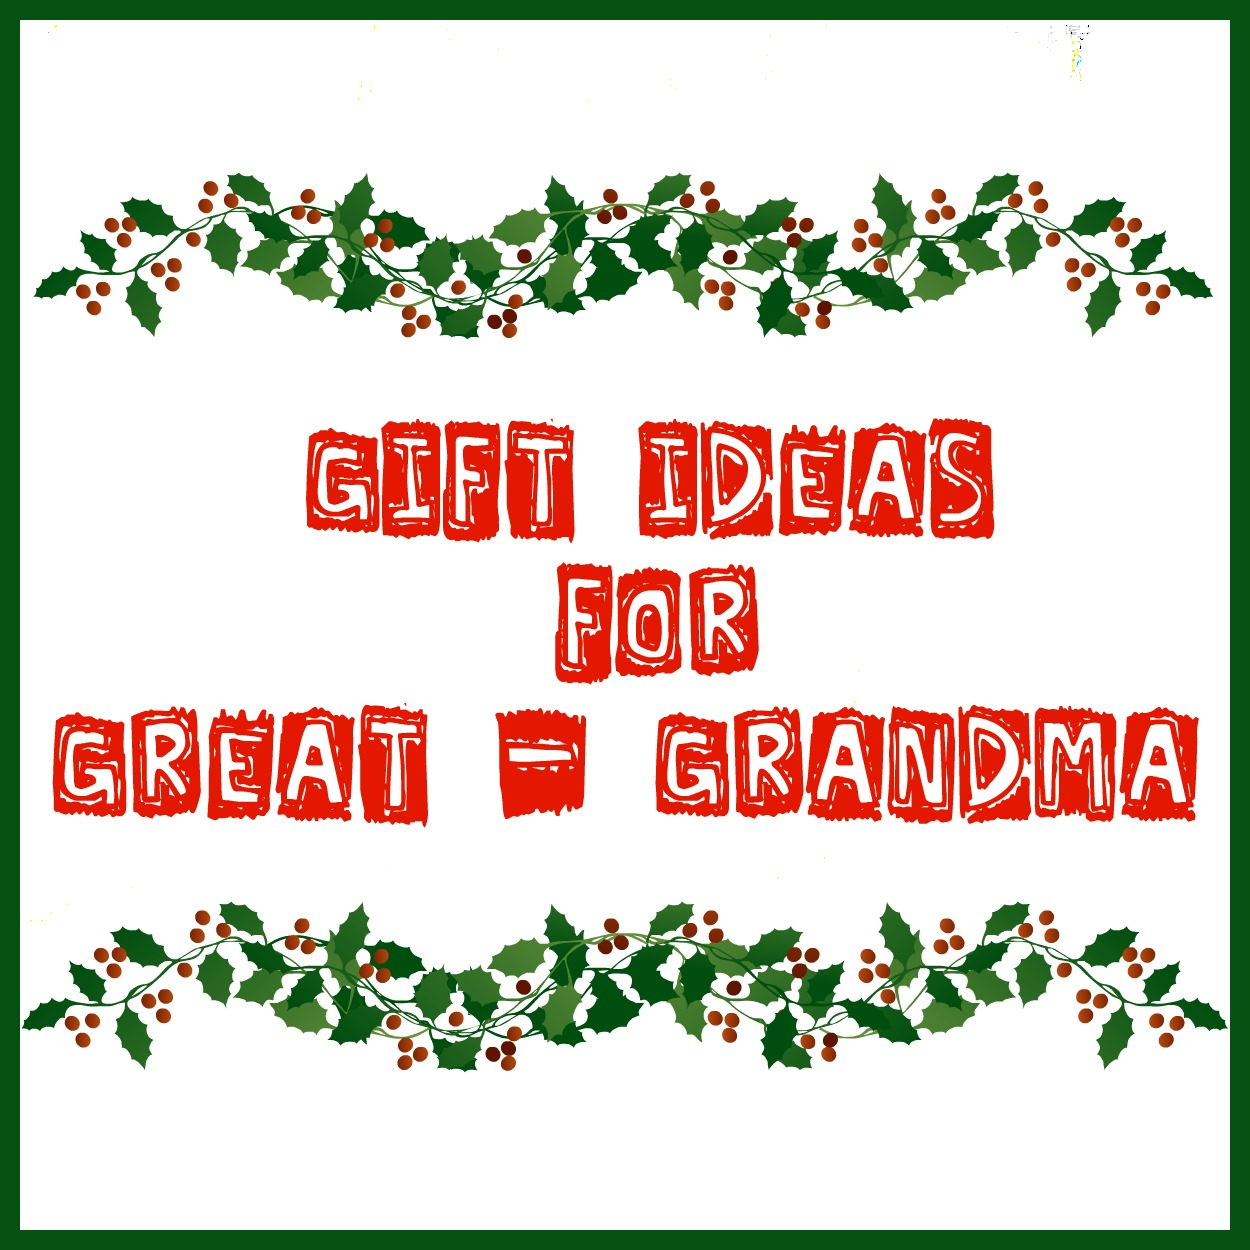 The Bean Sprout Notes: Gift Ideas for Great Grandma